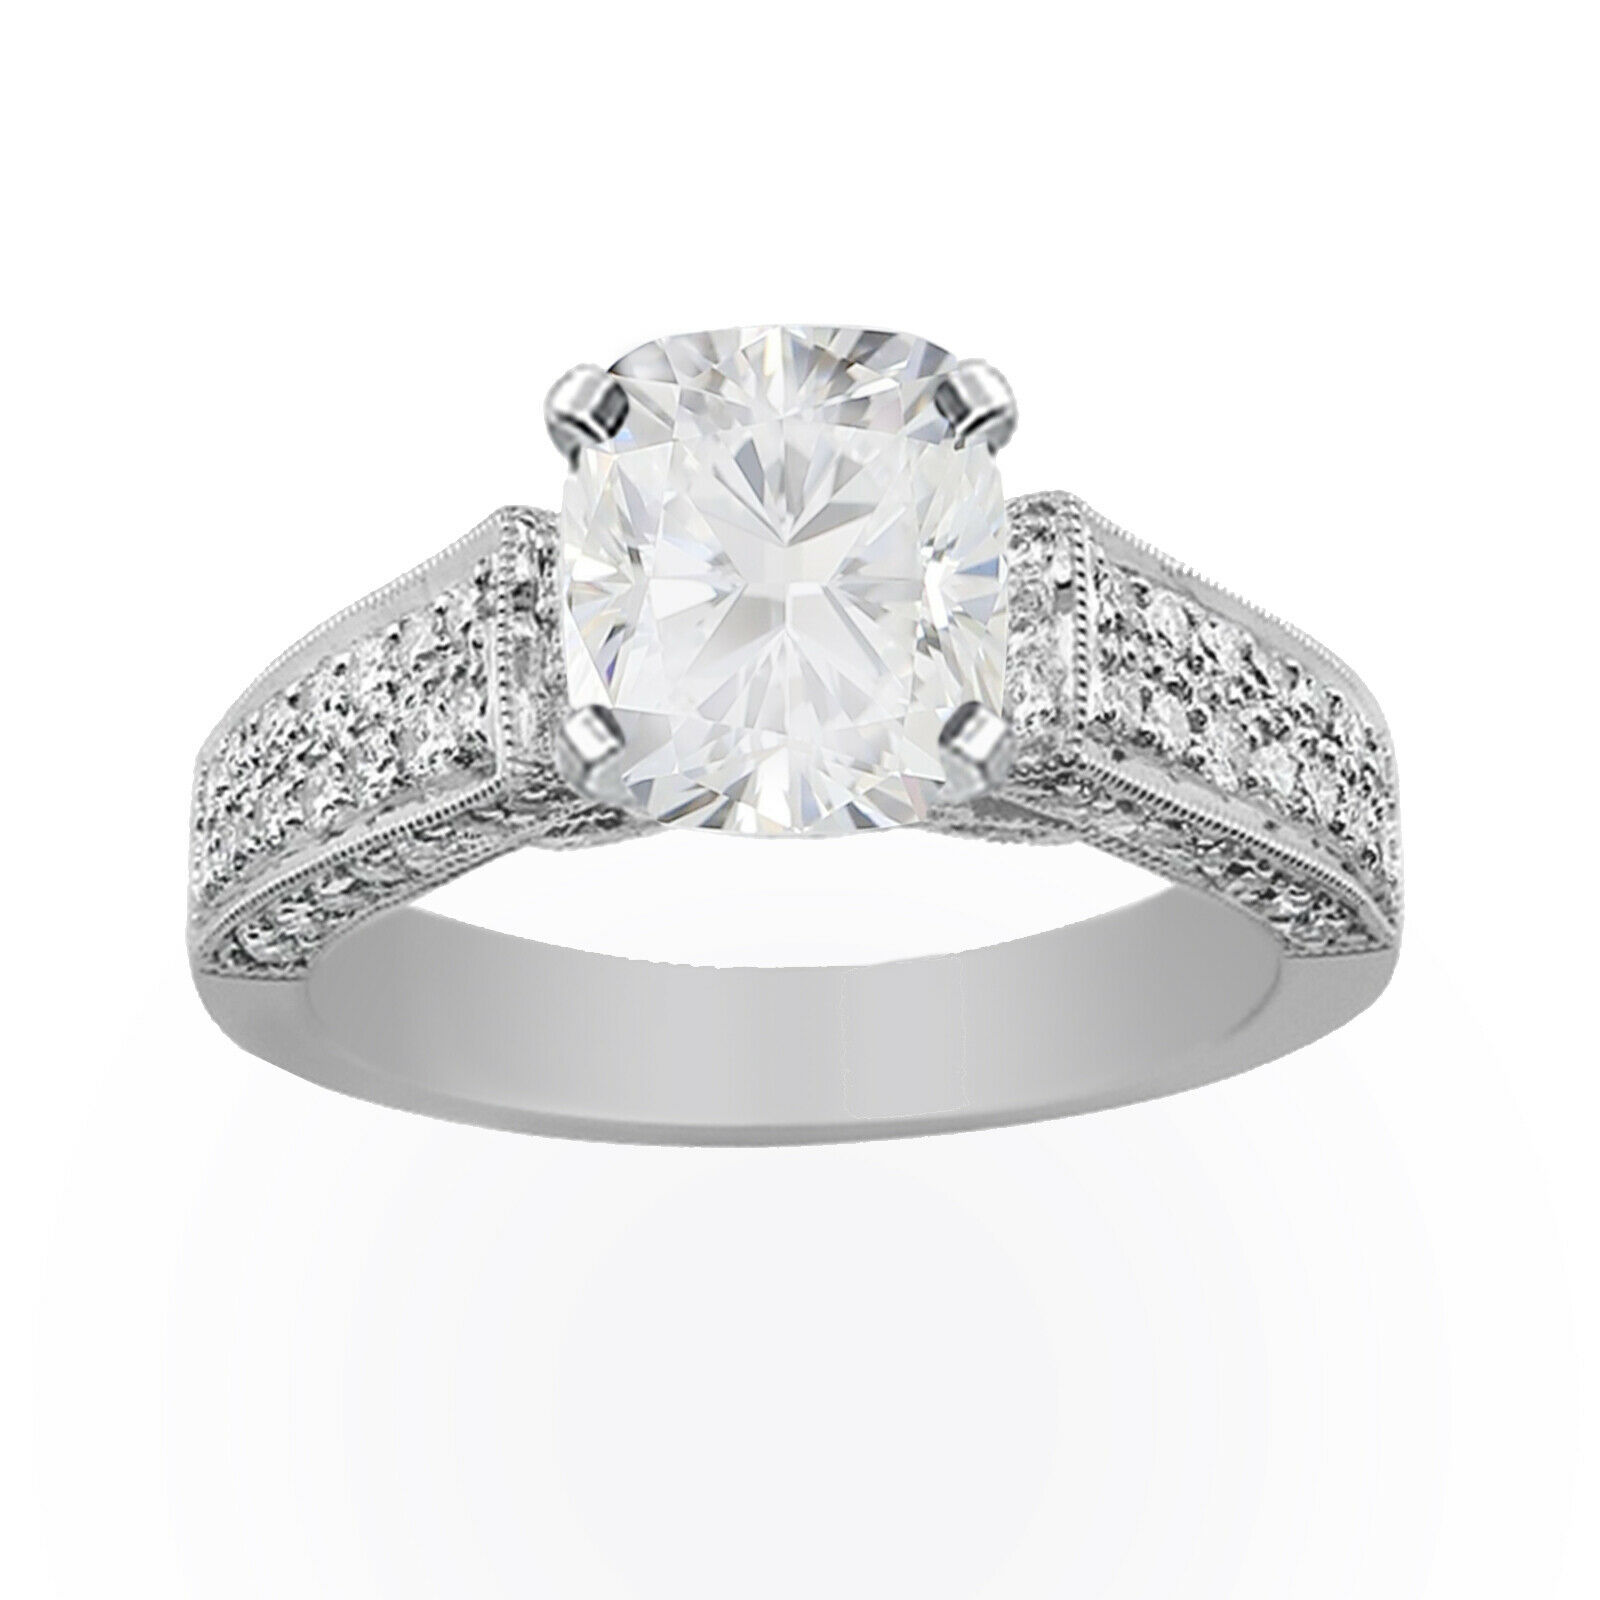 GIA Certified Diamond Engagement Ring 14k White Gold 2.58 carat Natural Cushion